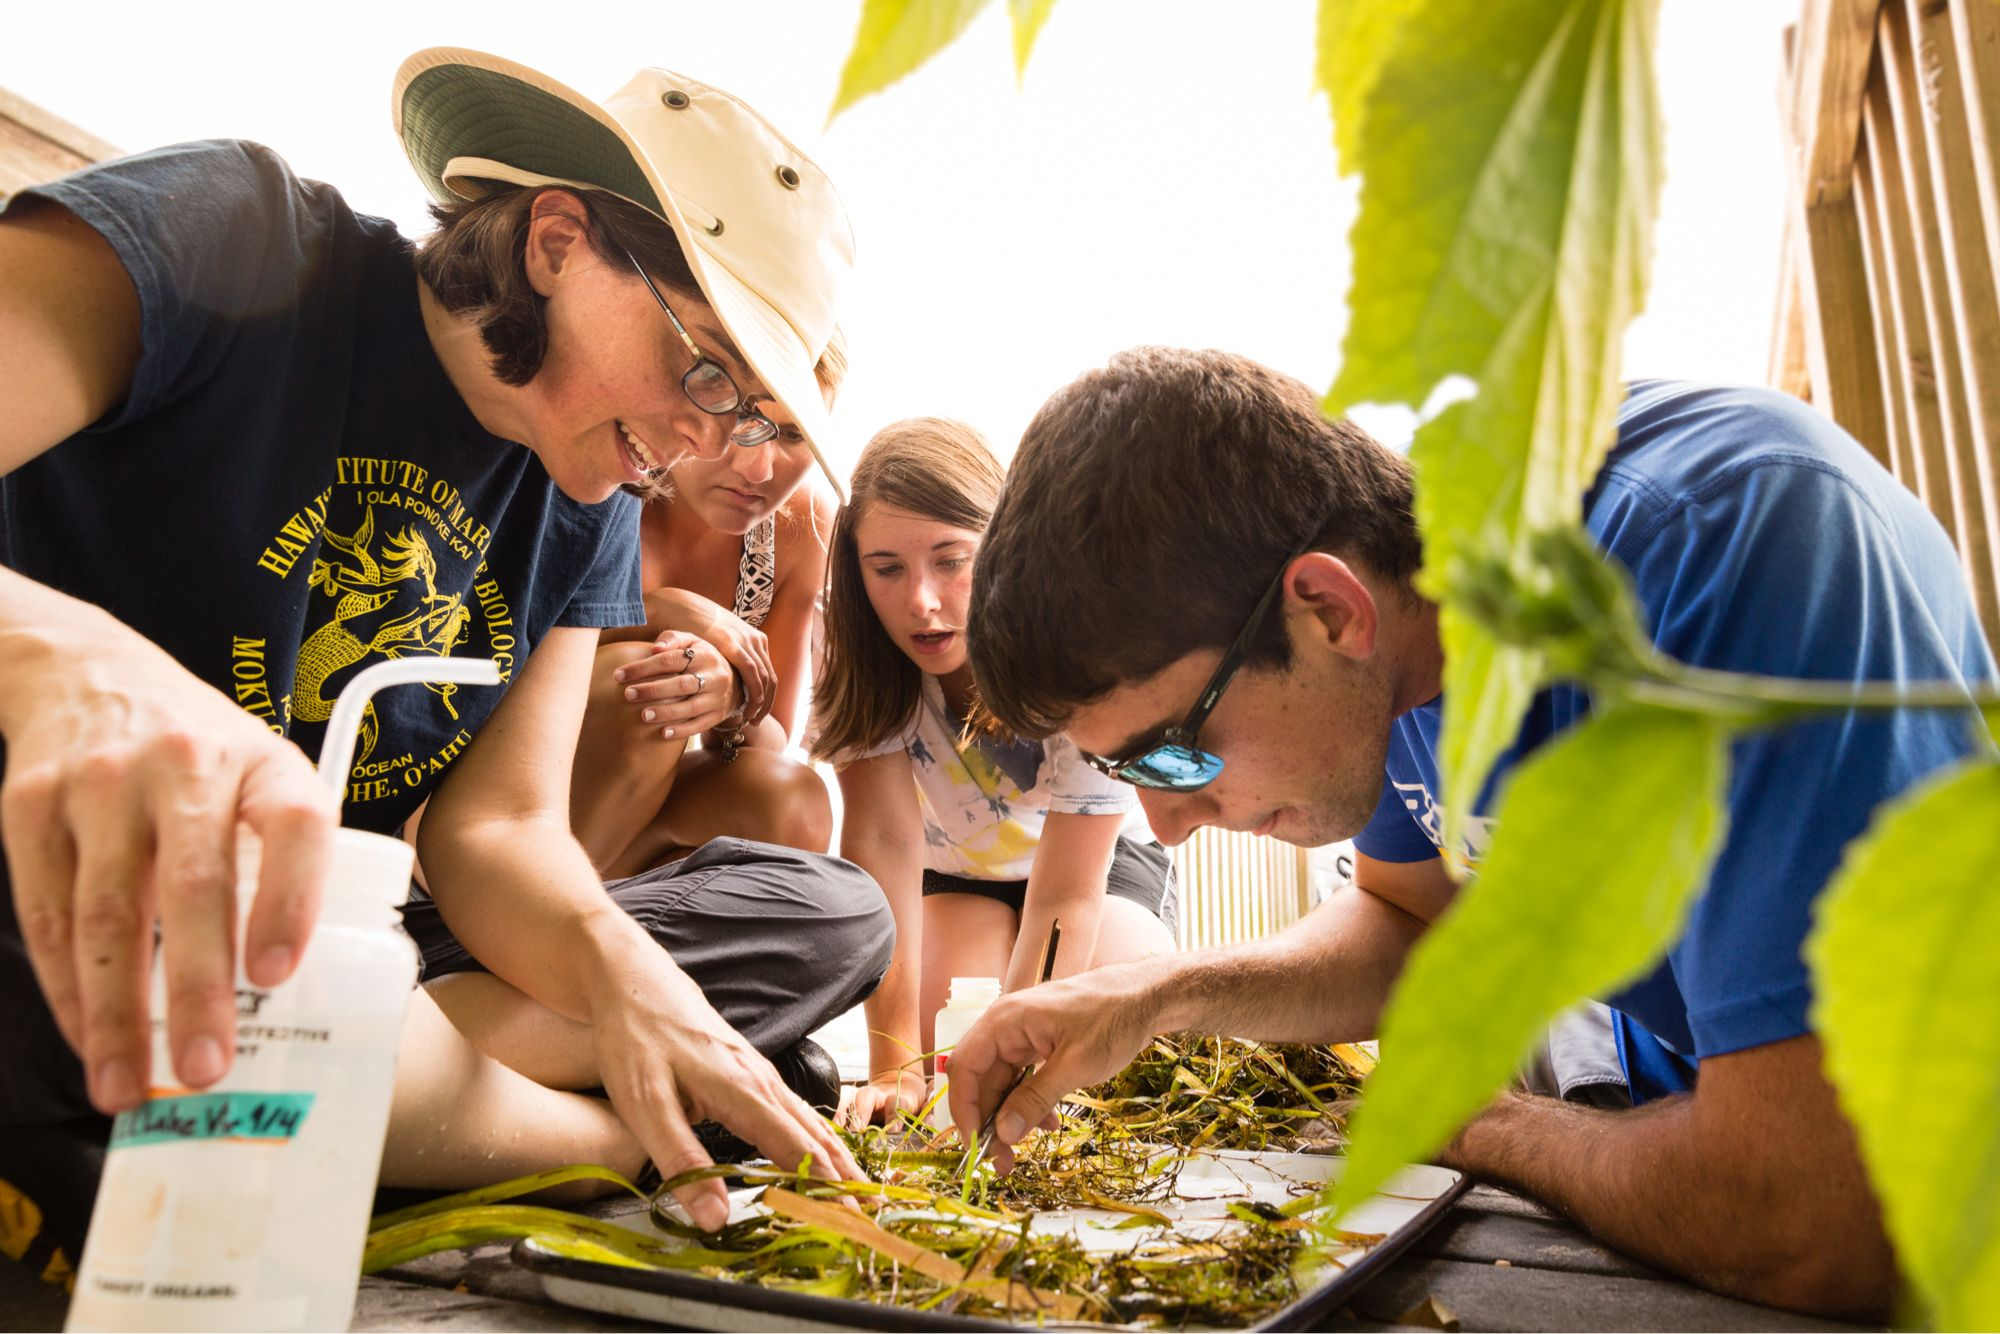 Ecology college students looking at plant materials they collected in Lake Virgina with their professor and mentor.